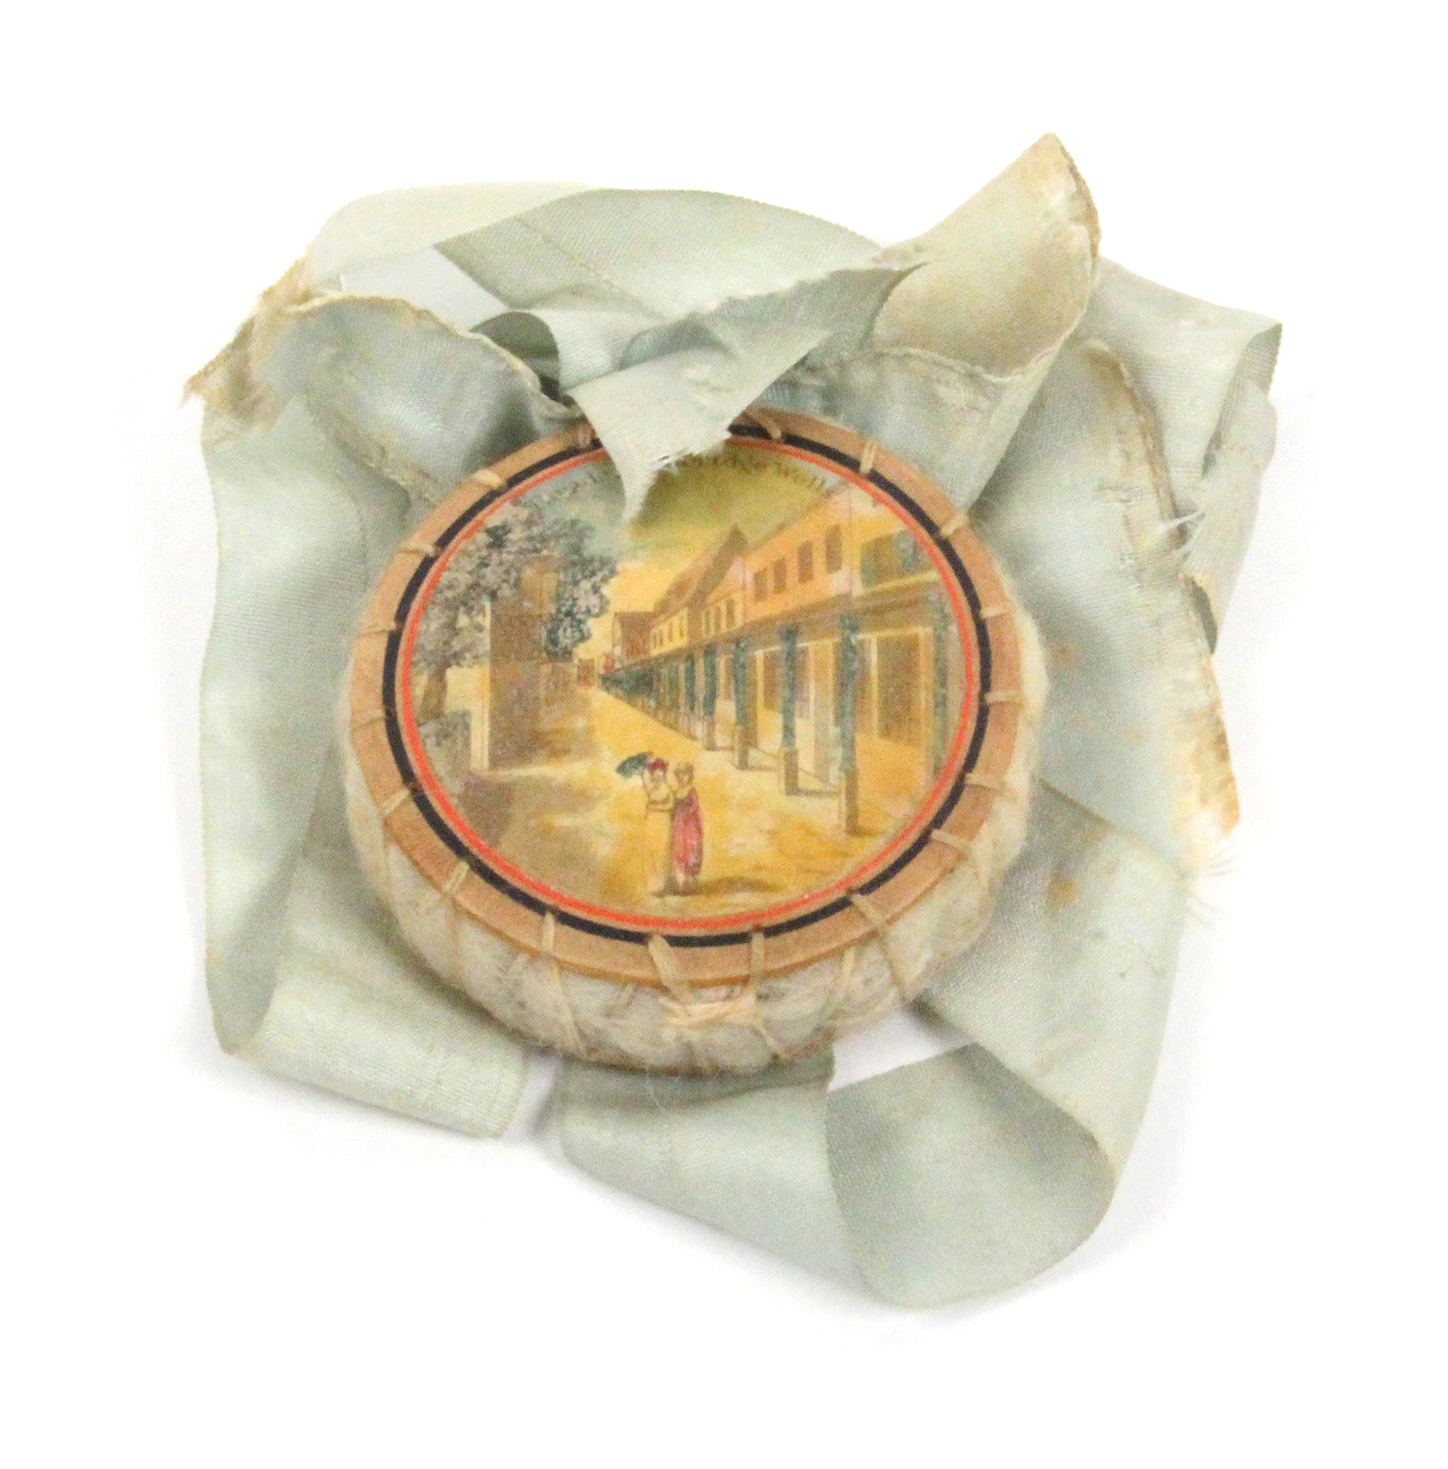 Lot 35 - A rare early Tunbridge ware circular pin cushion one side with a colour print titled 'Parade